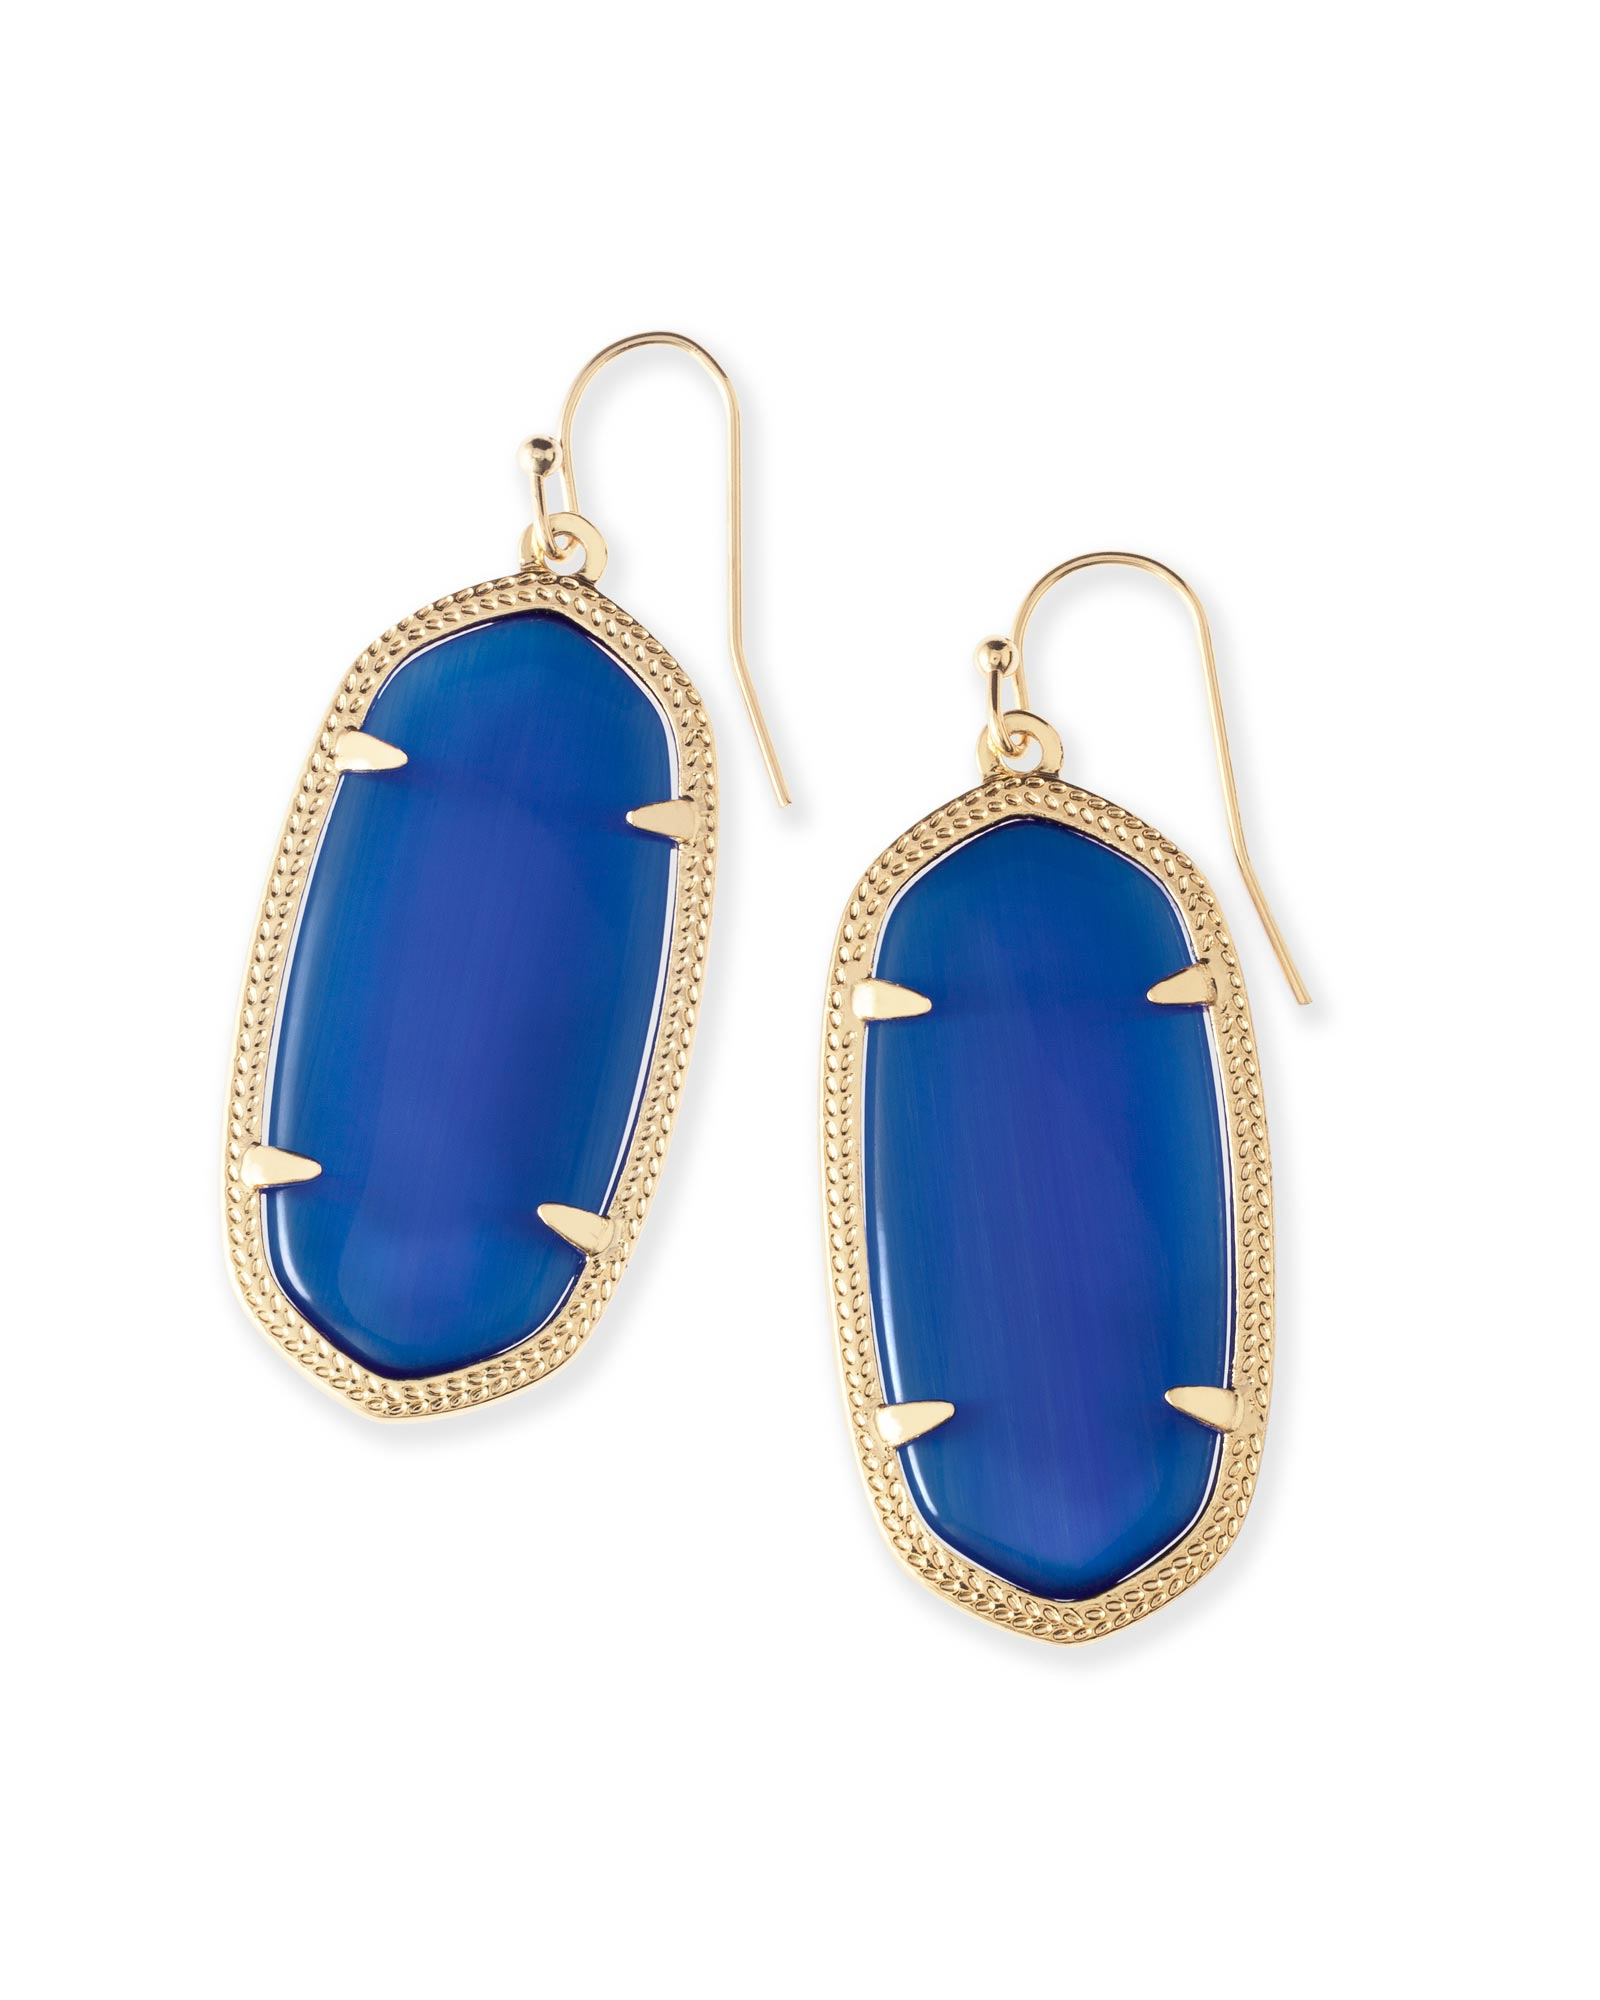 gemstone earrings img jewellery lightbox blue jarkan lizaneya white stone product navy online